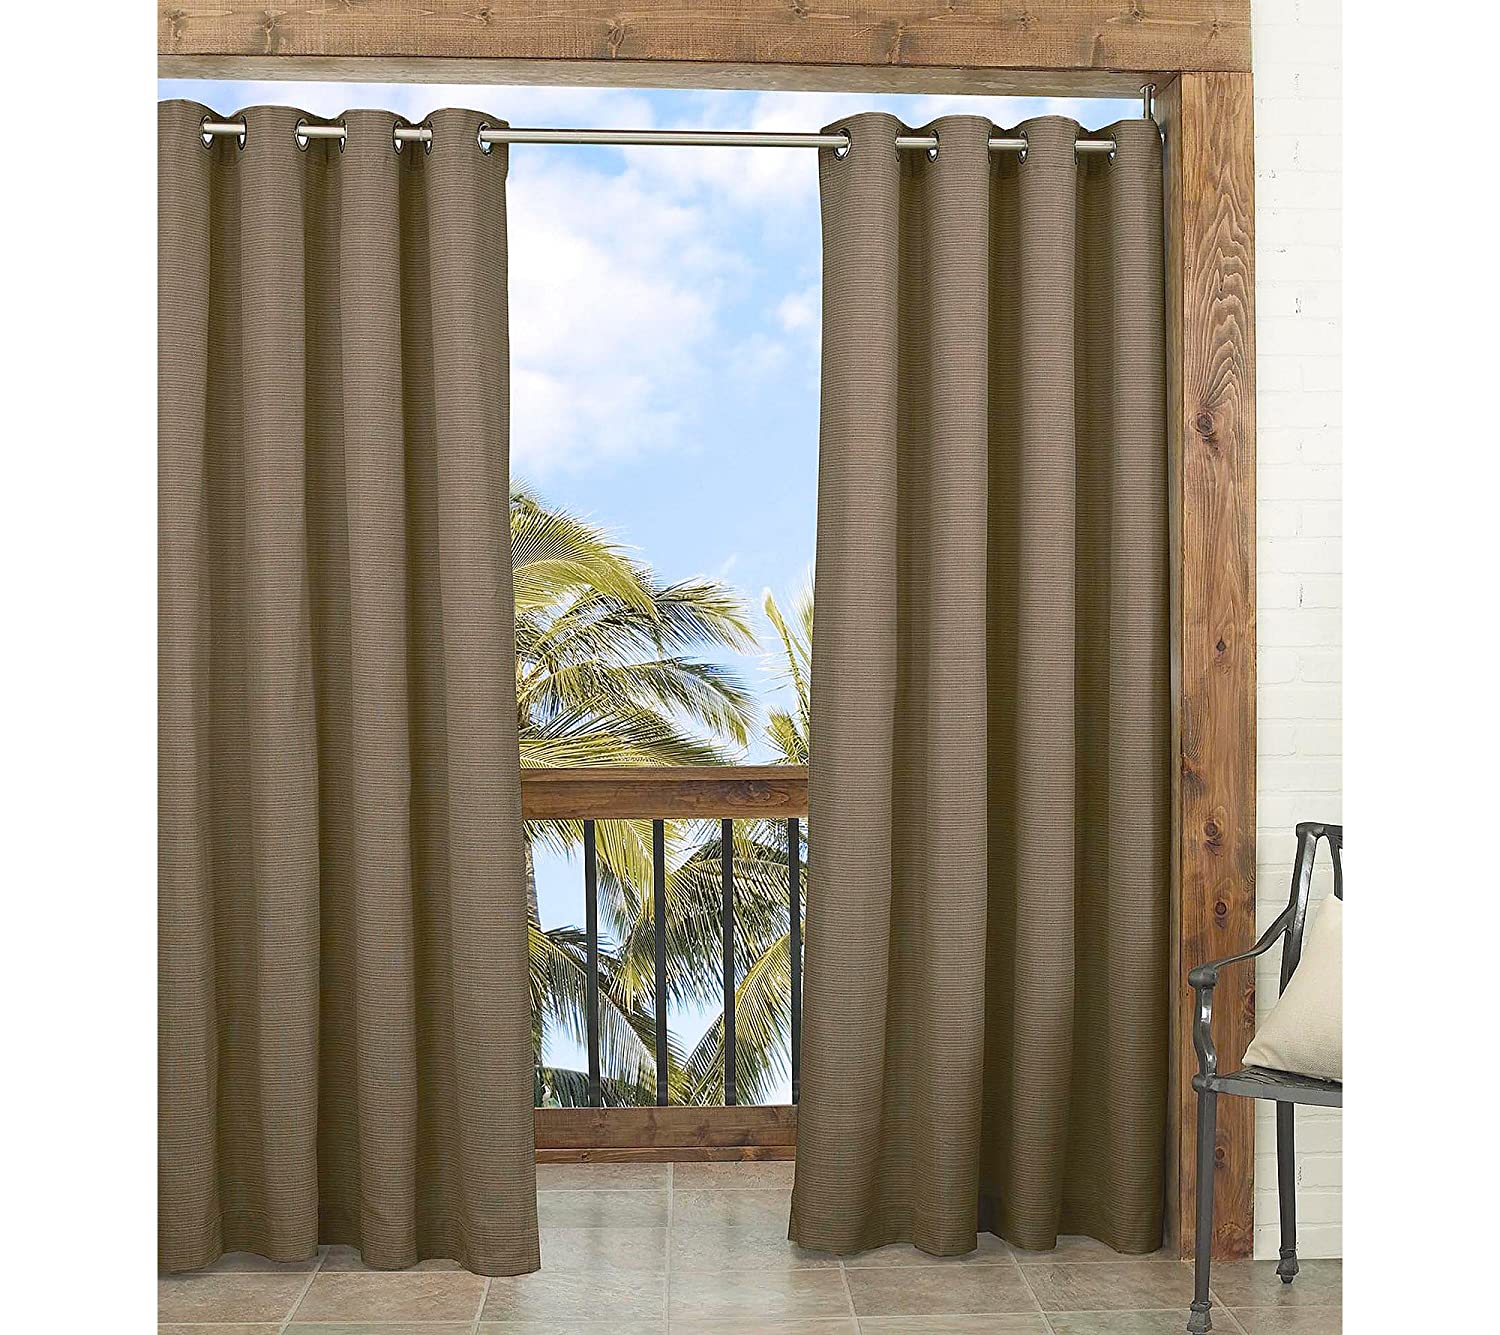 Caramel Ellery Homestyles Outdoor Single Curtain Panel Parasol 14025052095CAM Key Largo 52-Inch by 95-Inch Indoor